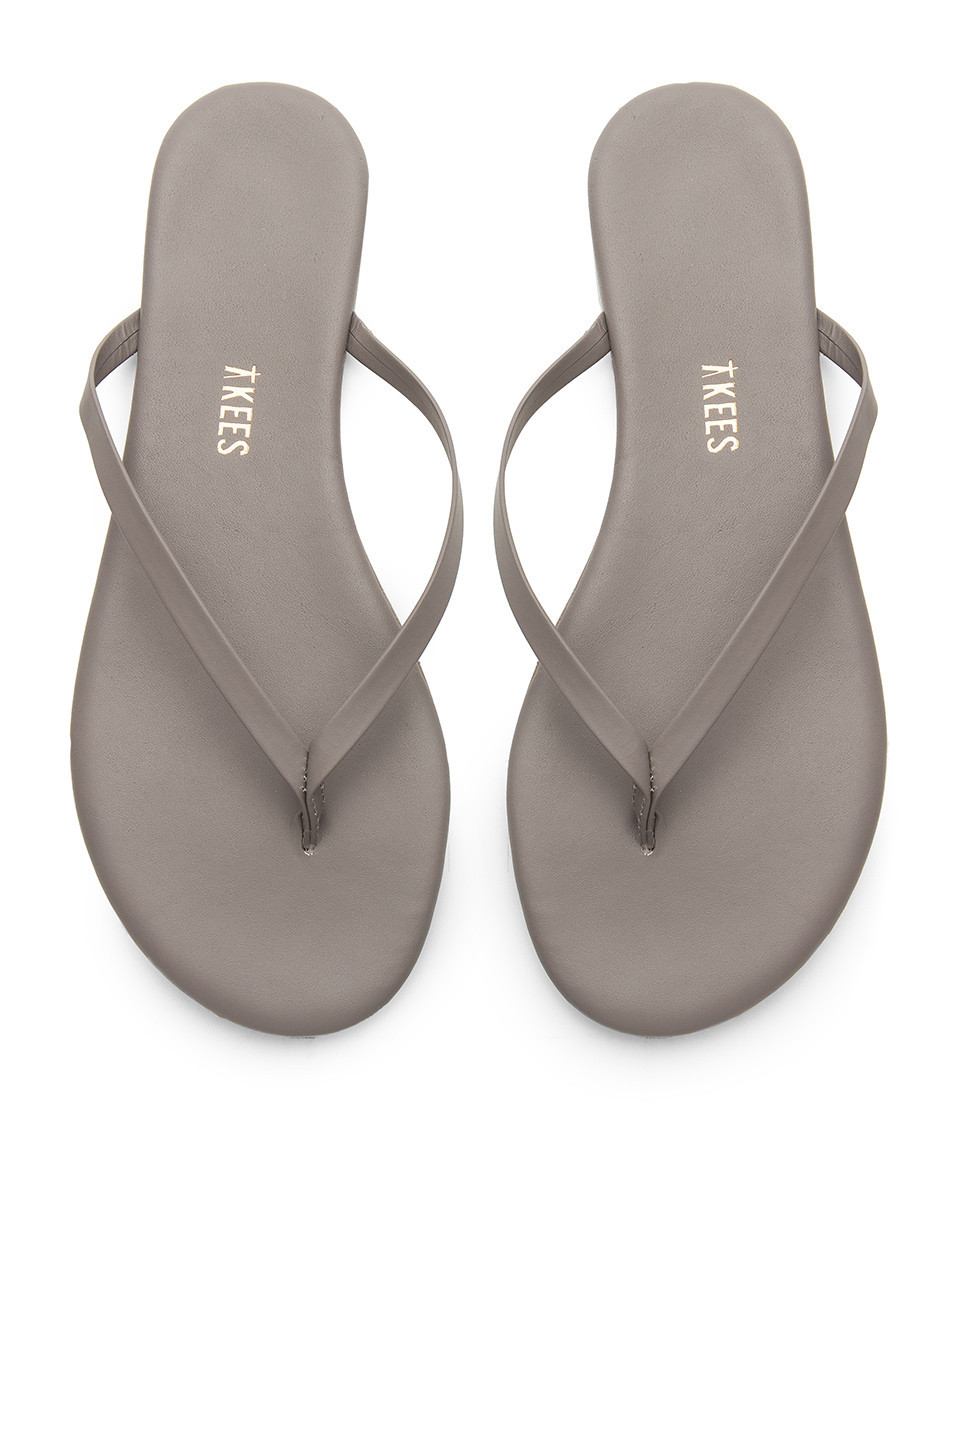 TKEES Solids Sandal in gray